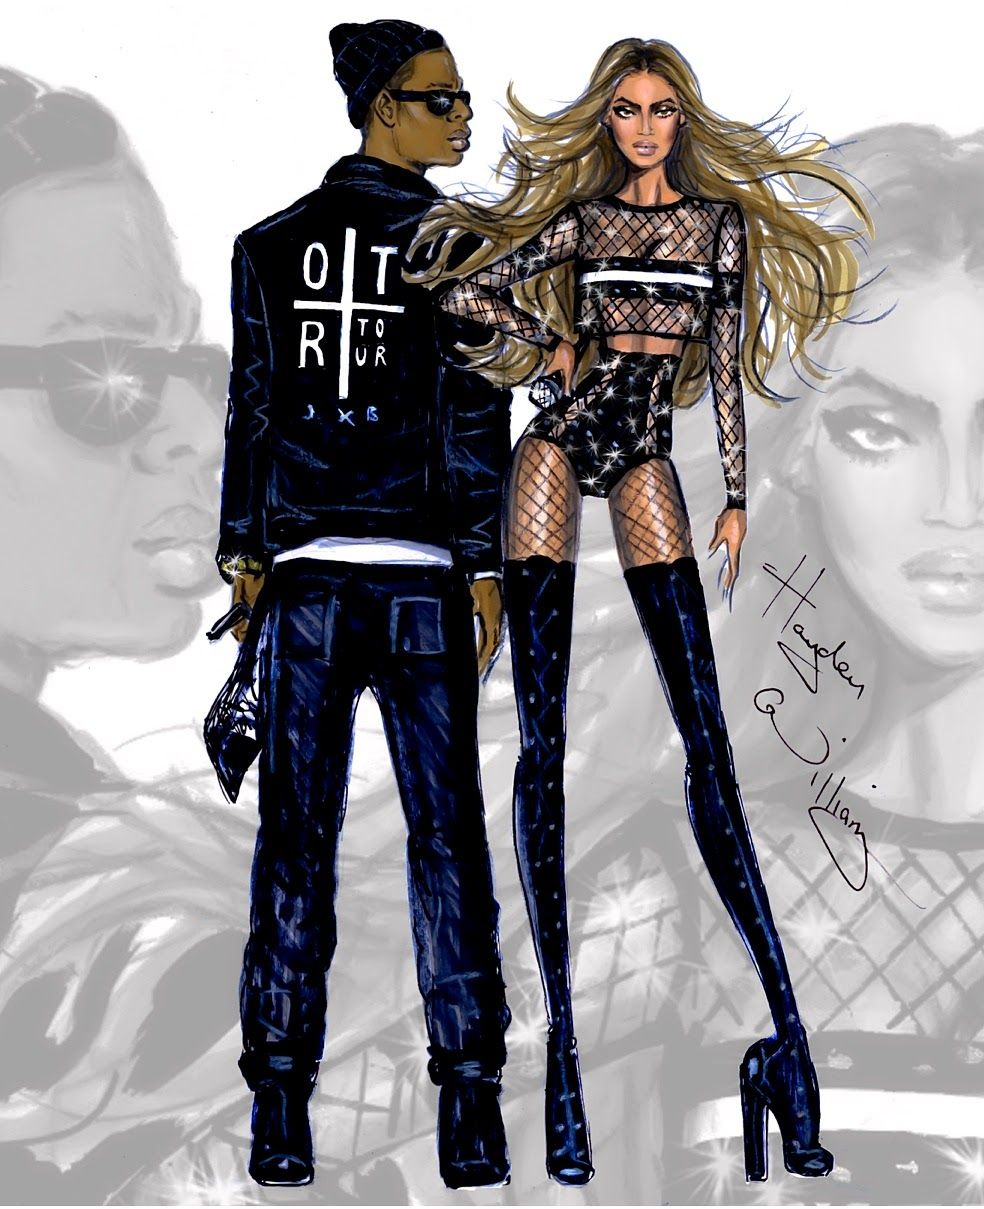 Hayden Williams Fashion Illustrations: J x B On The Run Tour by Hayden Williams